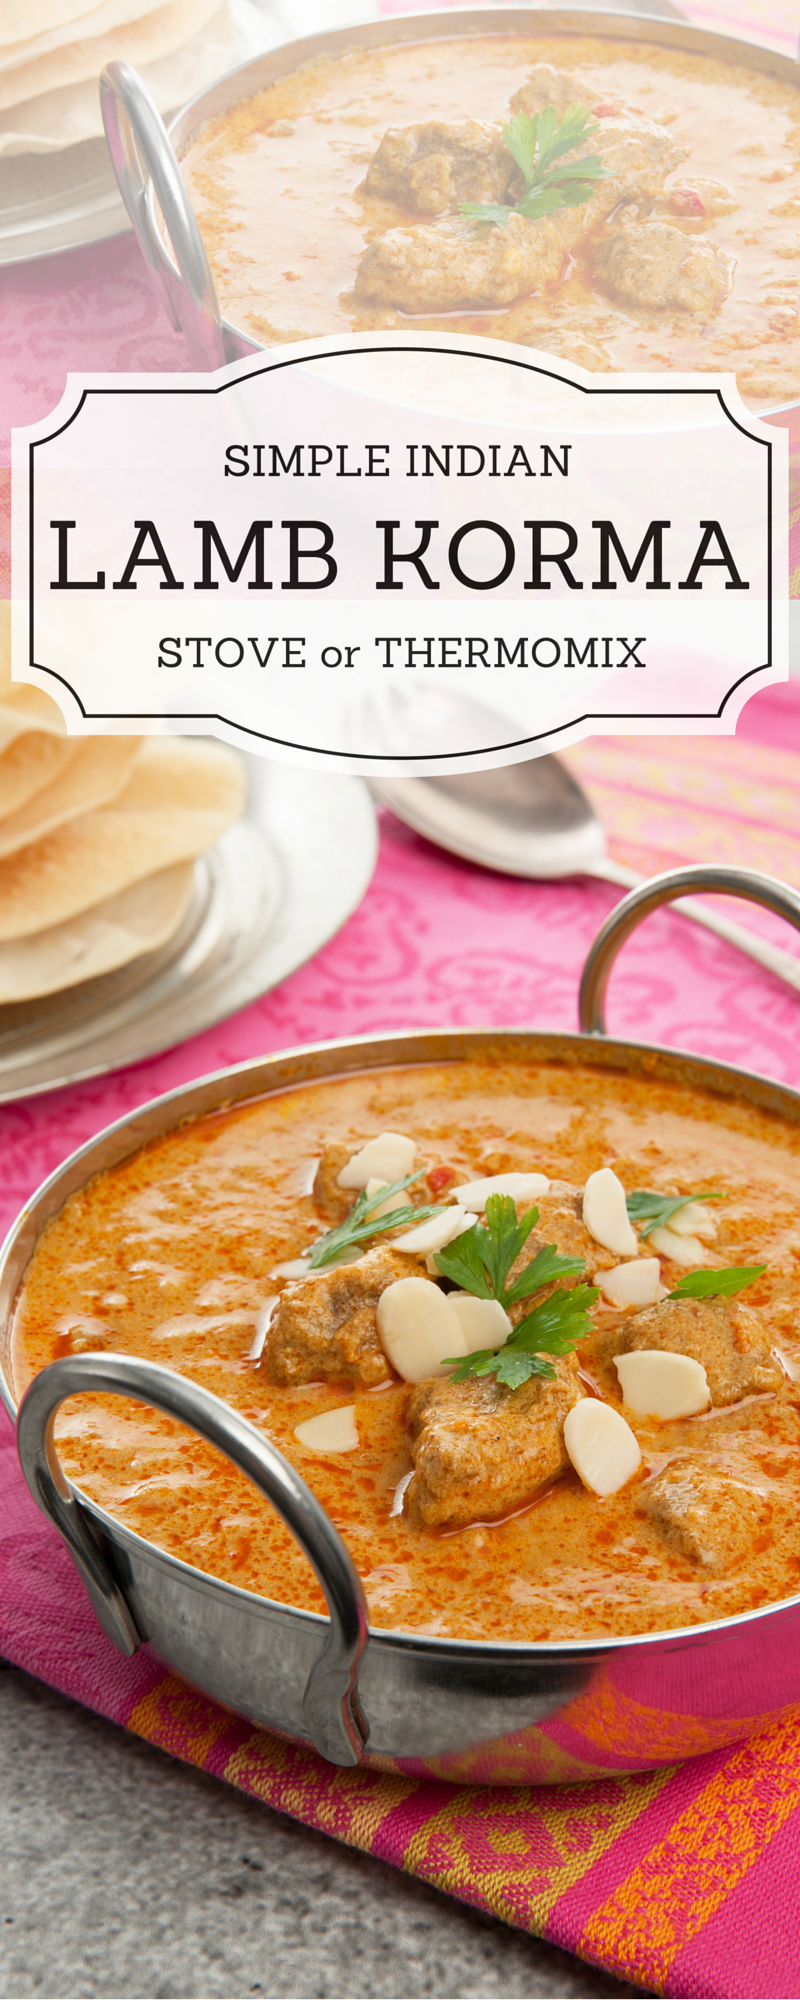 deliciously simple lamb korma recipe you will make this